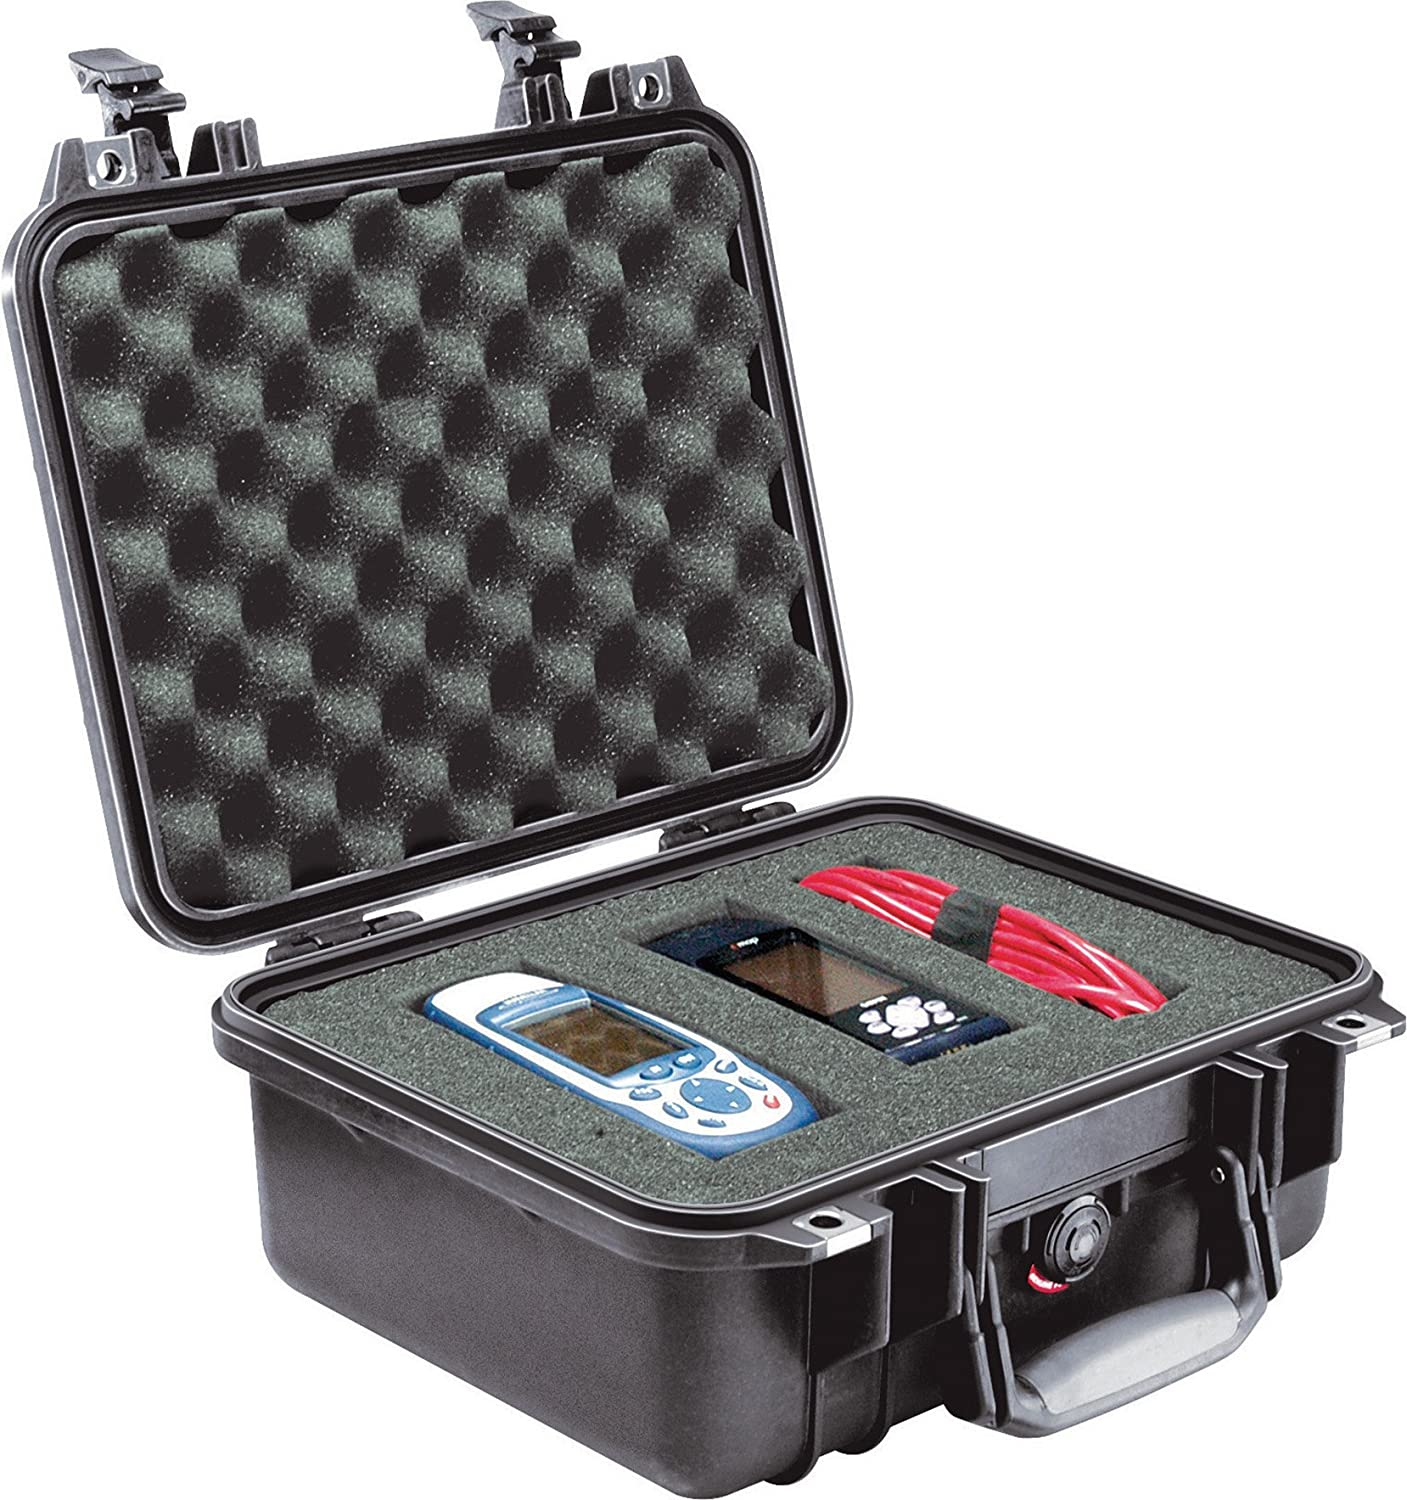 Desert Tan Pelican 1400 Camera Case With Foam